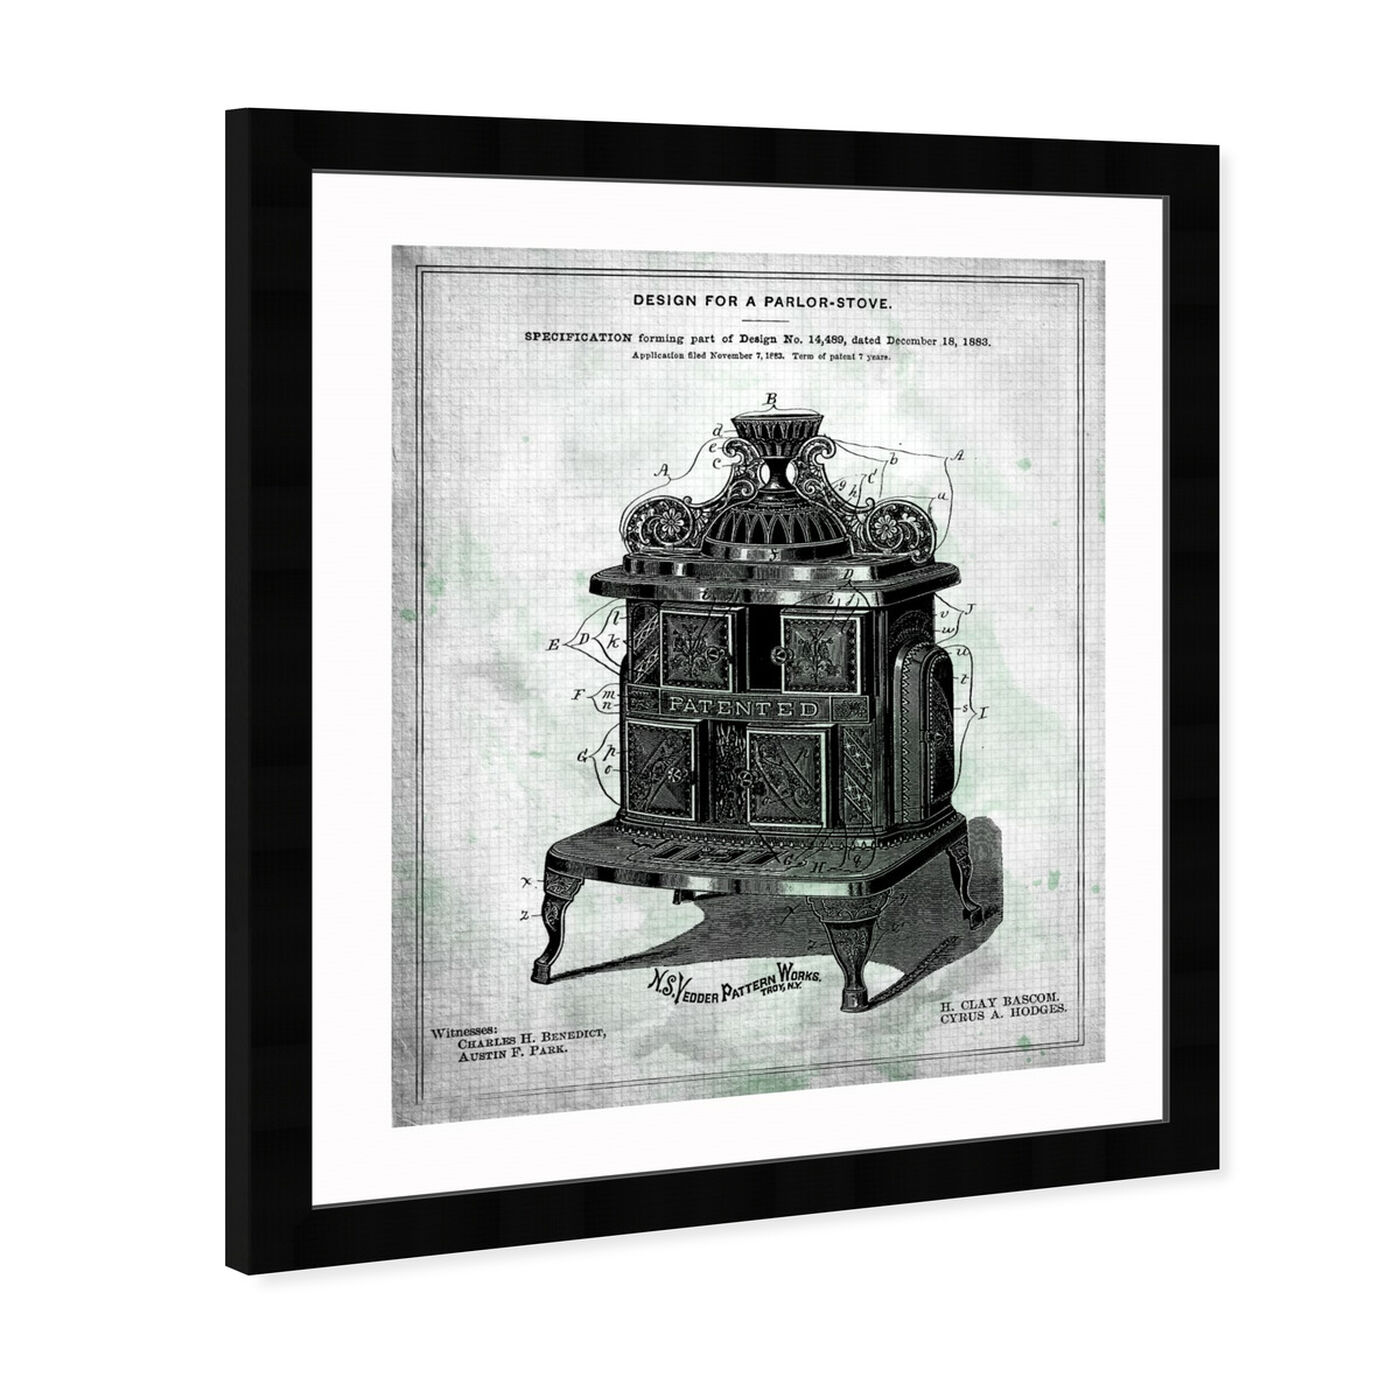 Angled view of Design for a Parlor-Stove 1883 featuring food and cuisine and kitchen art.